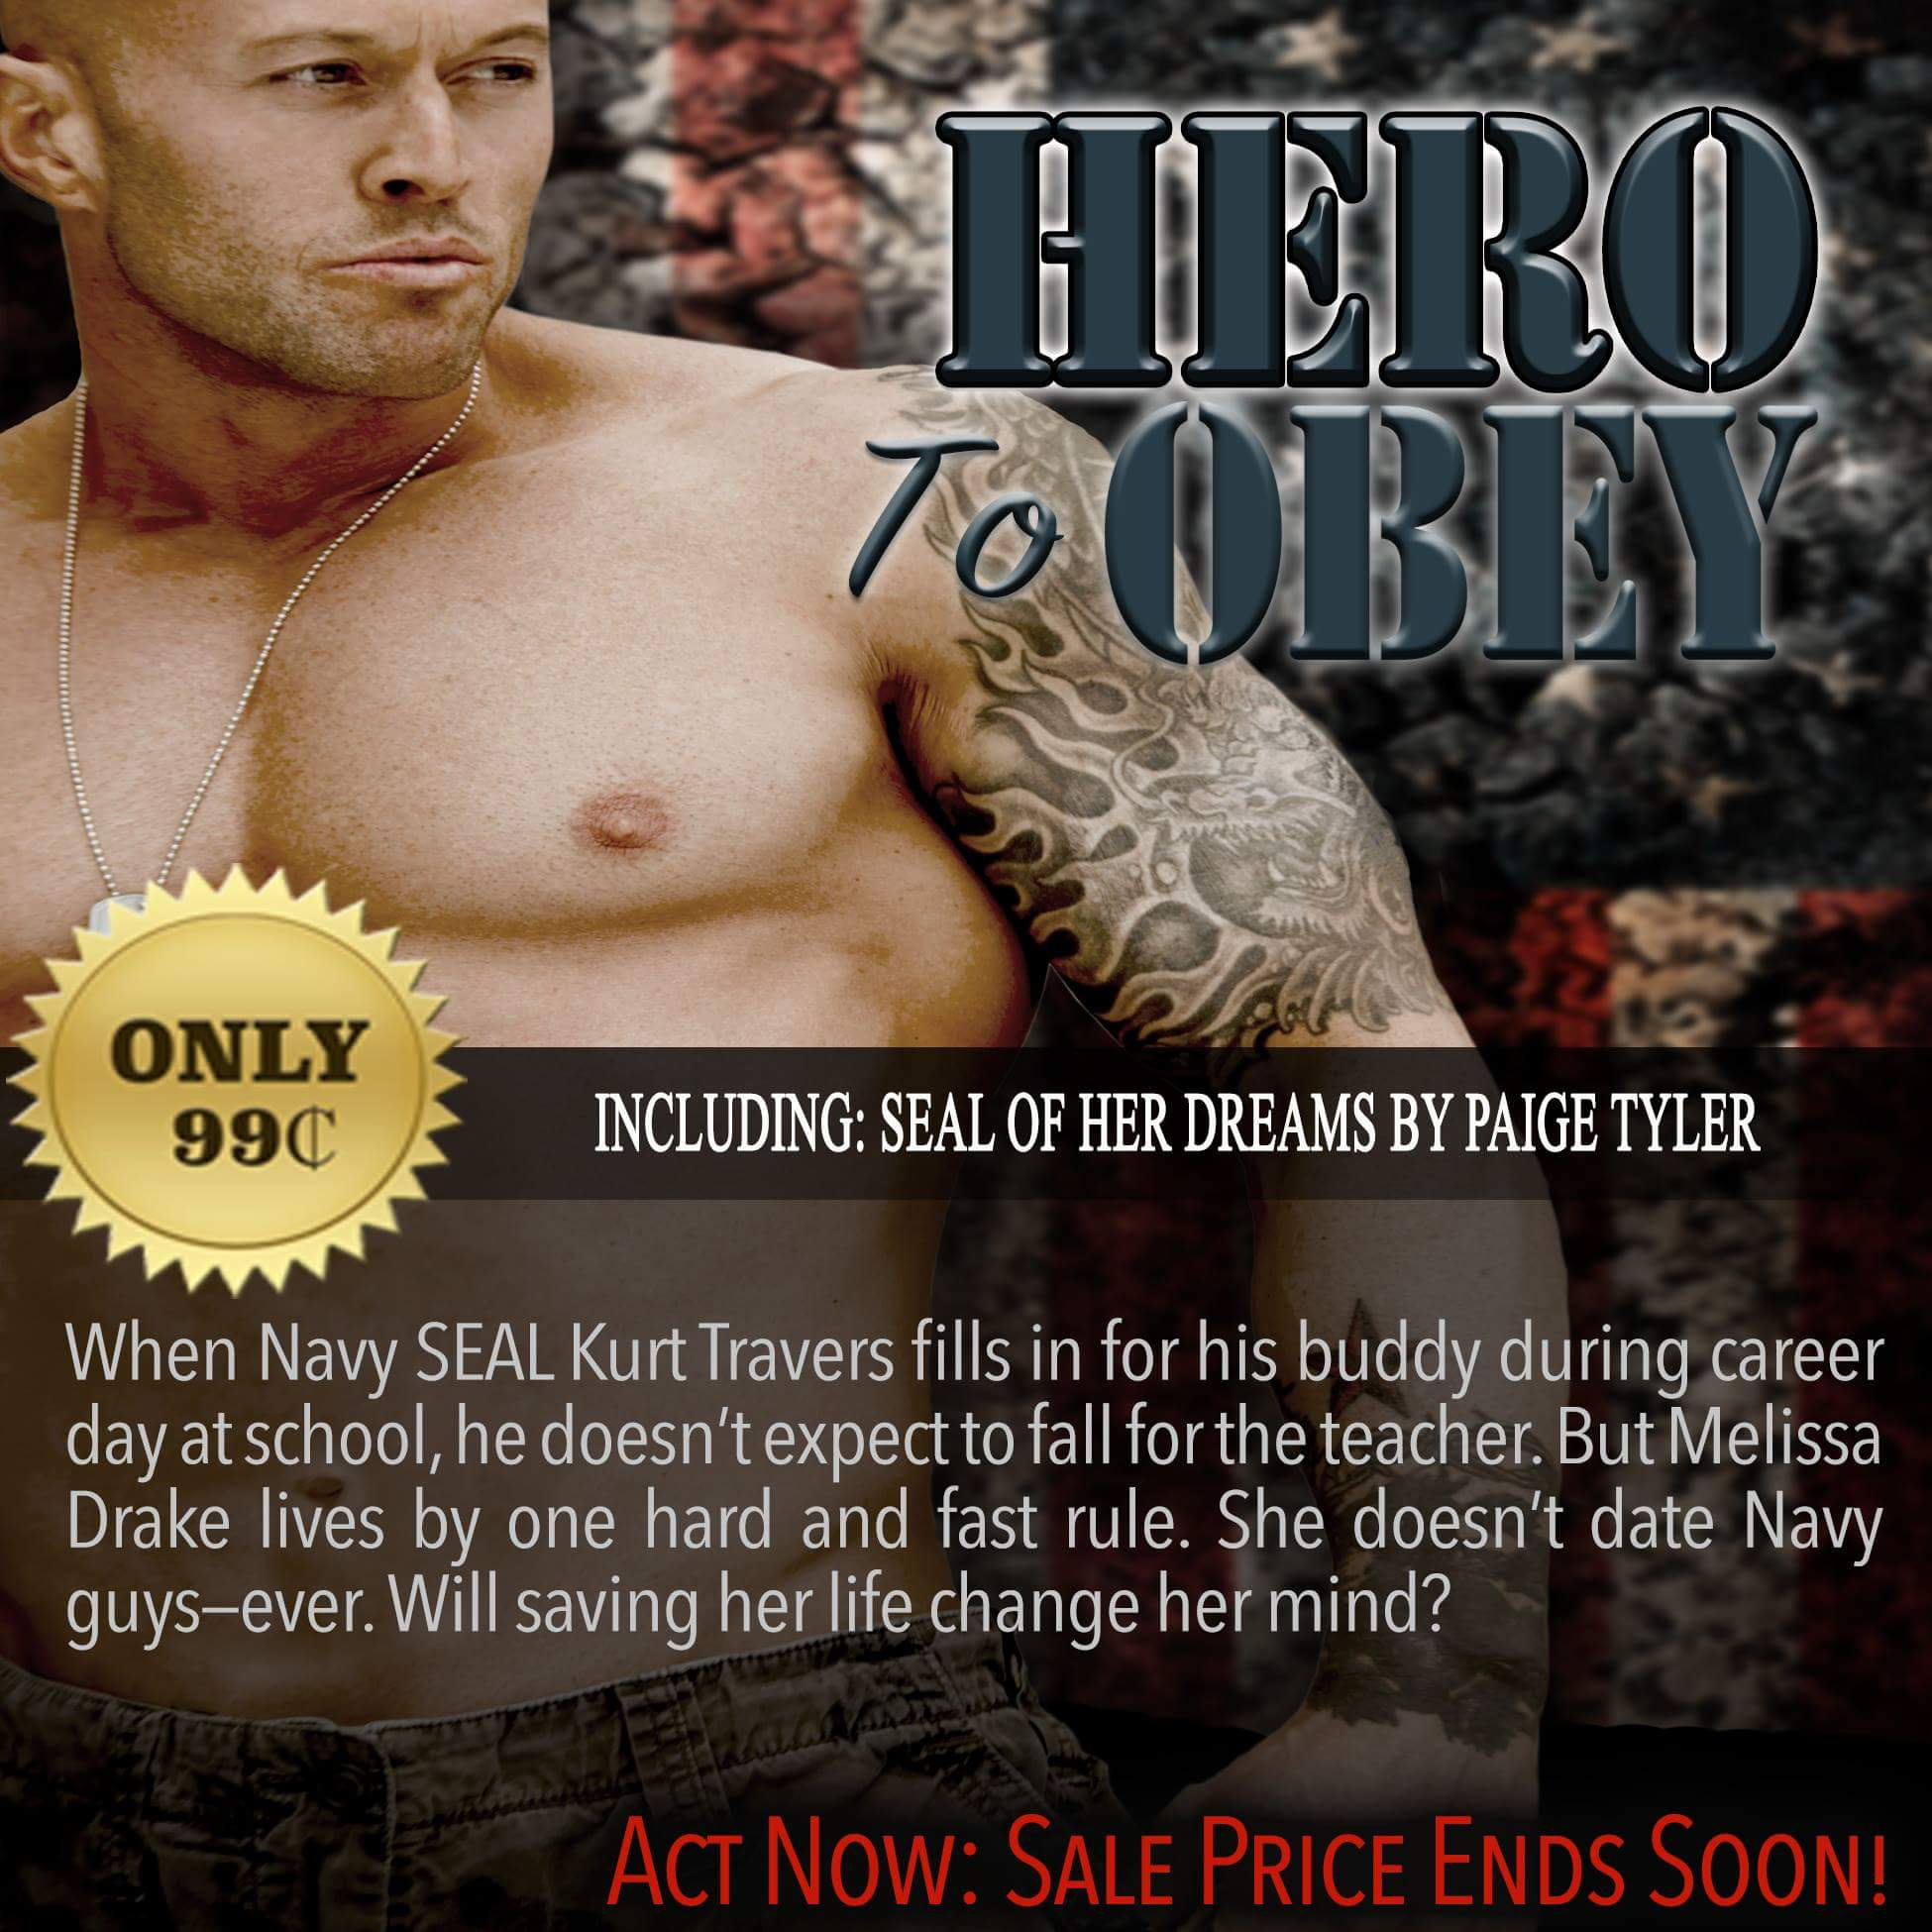 Hero To Obey Book Cover Model Actor John Joseph Quinlan by Paige Tyler. #JohnQuinlan #Hero2obey